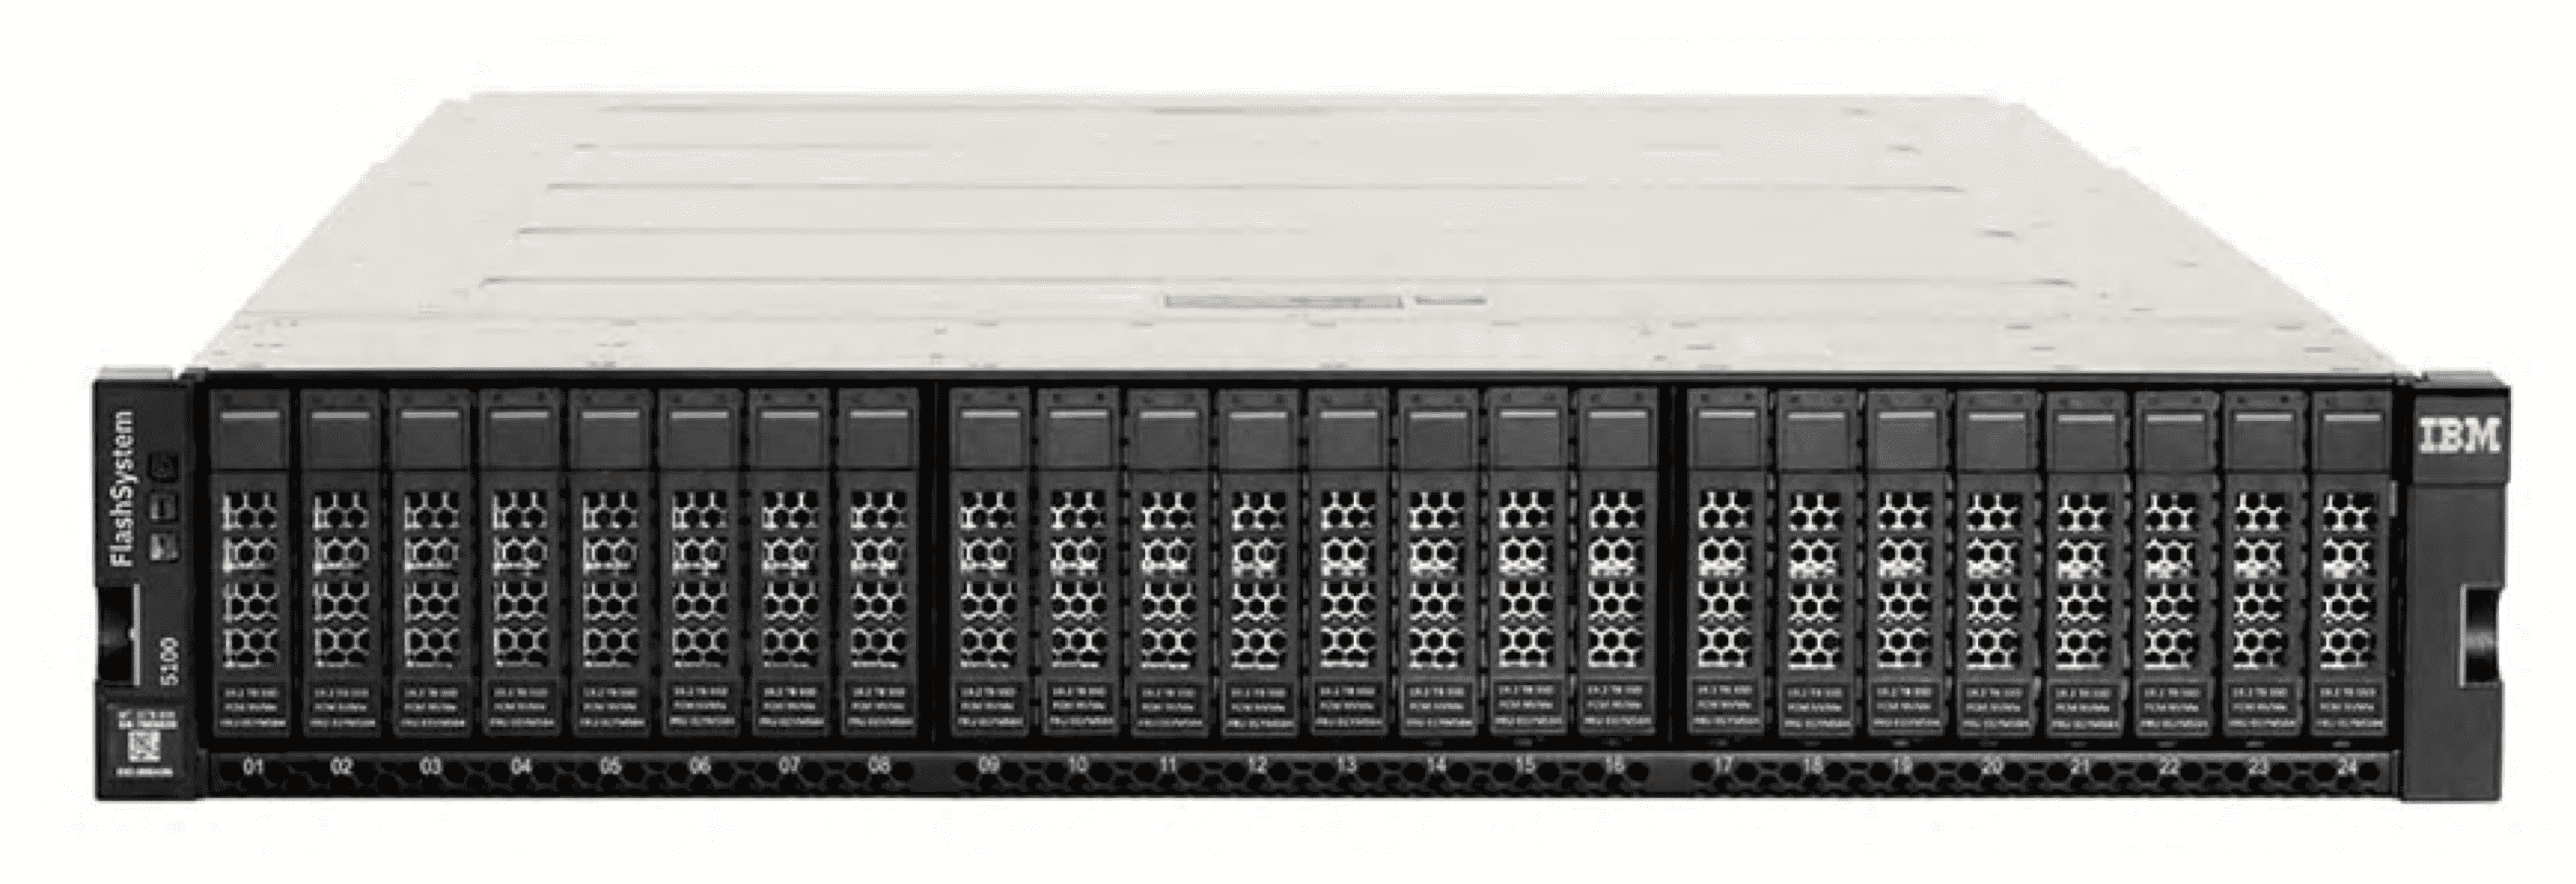 IBM FlashSystem Review – Part 2 – Software